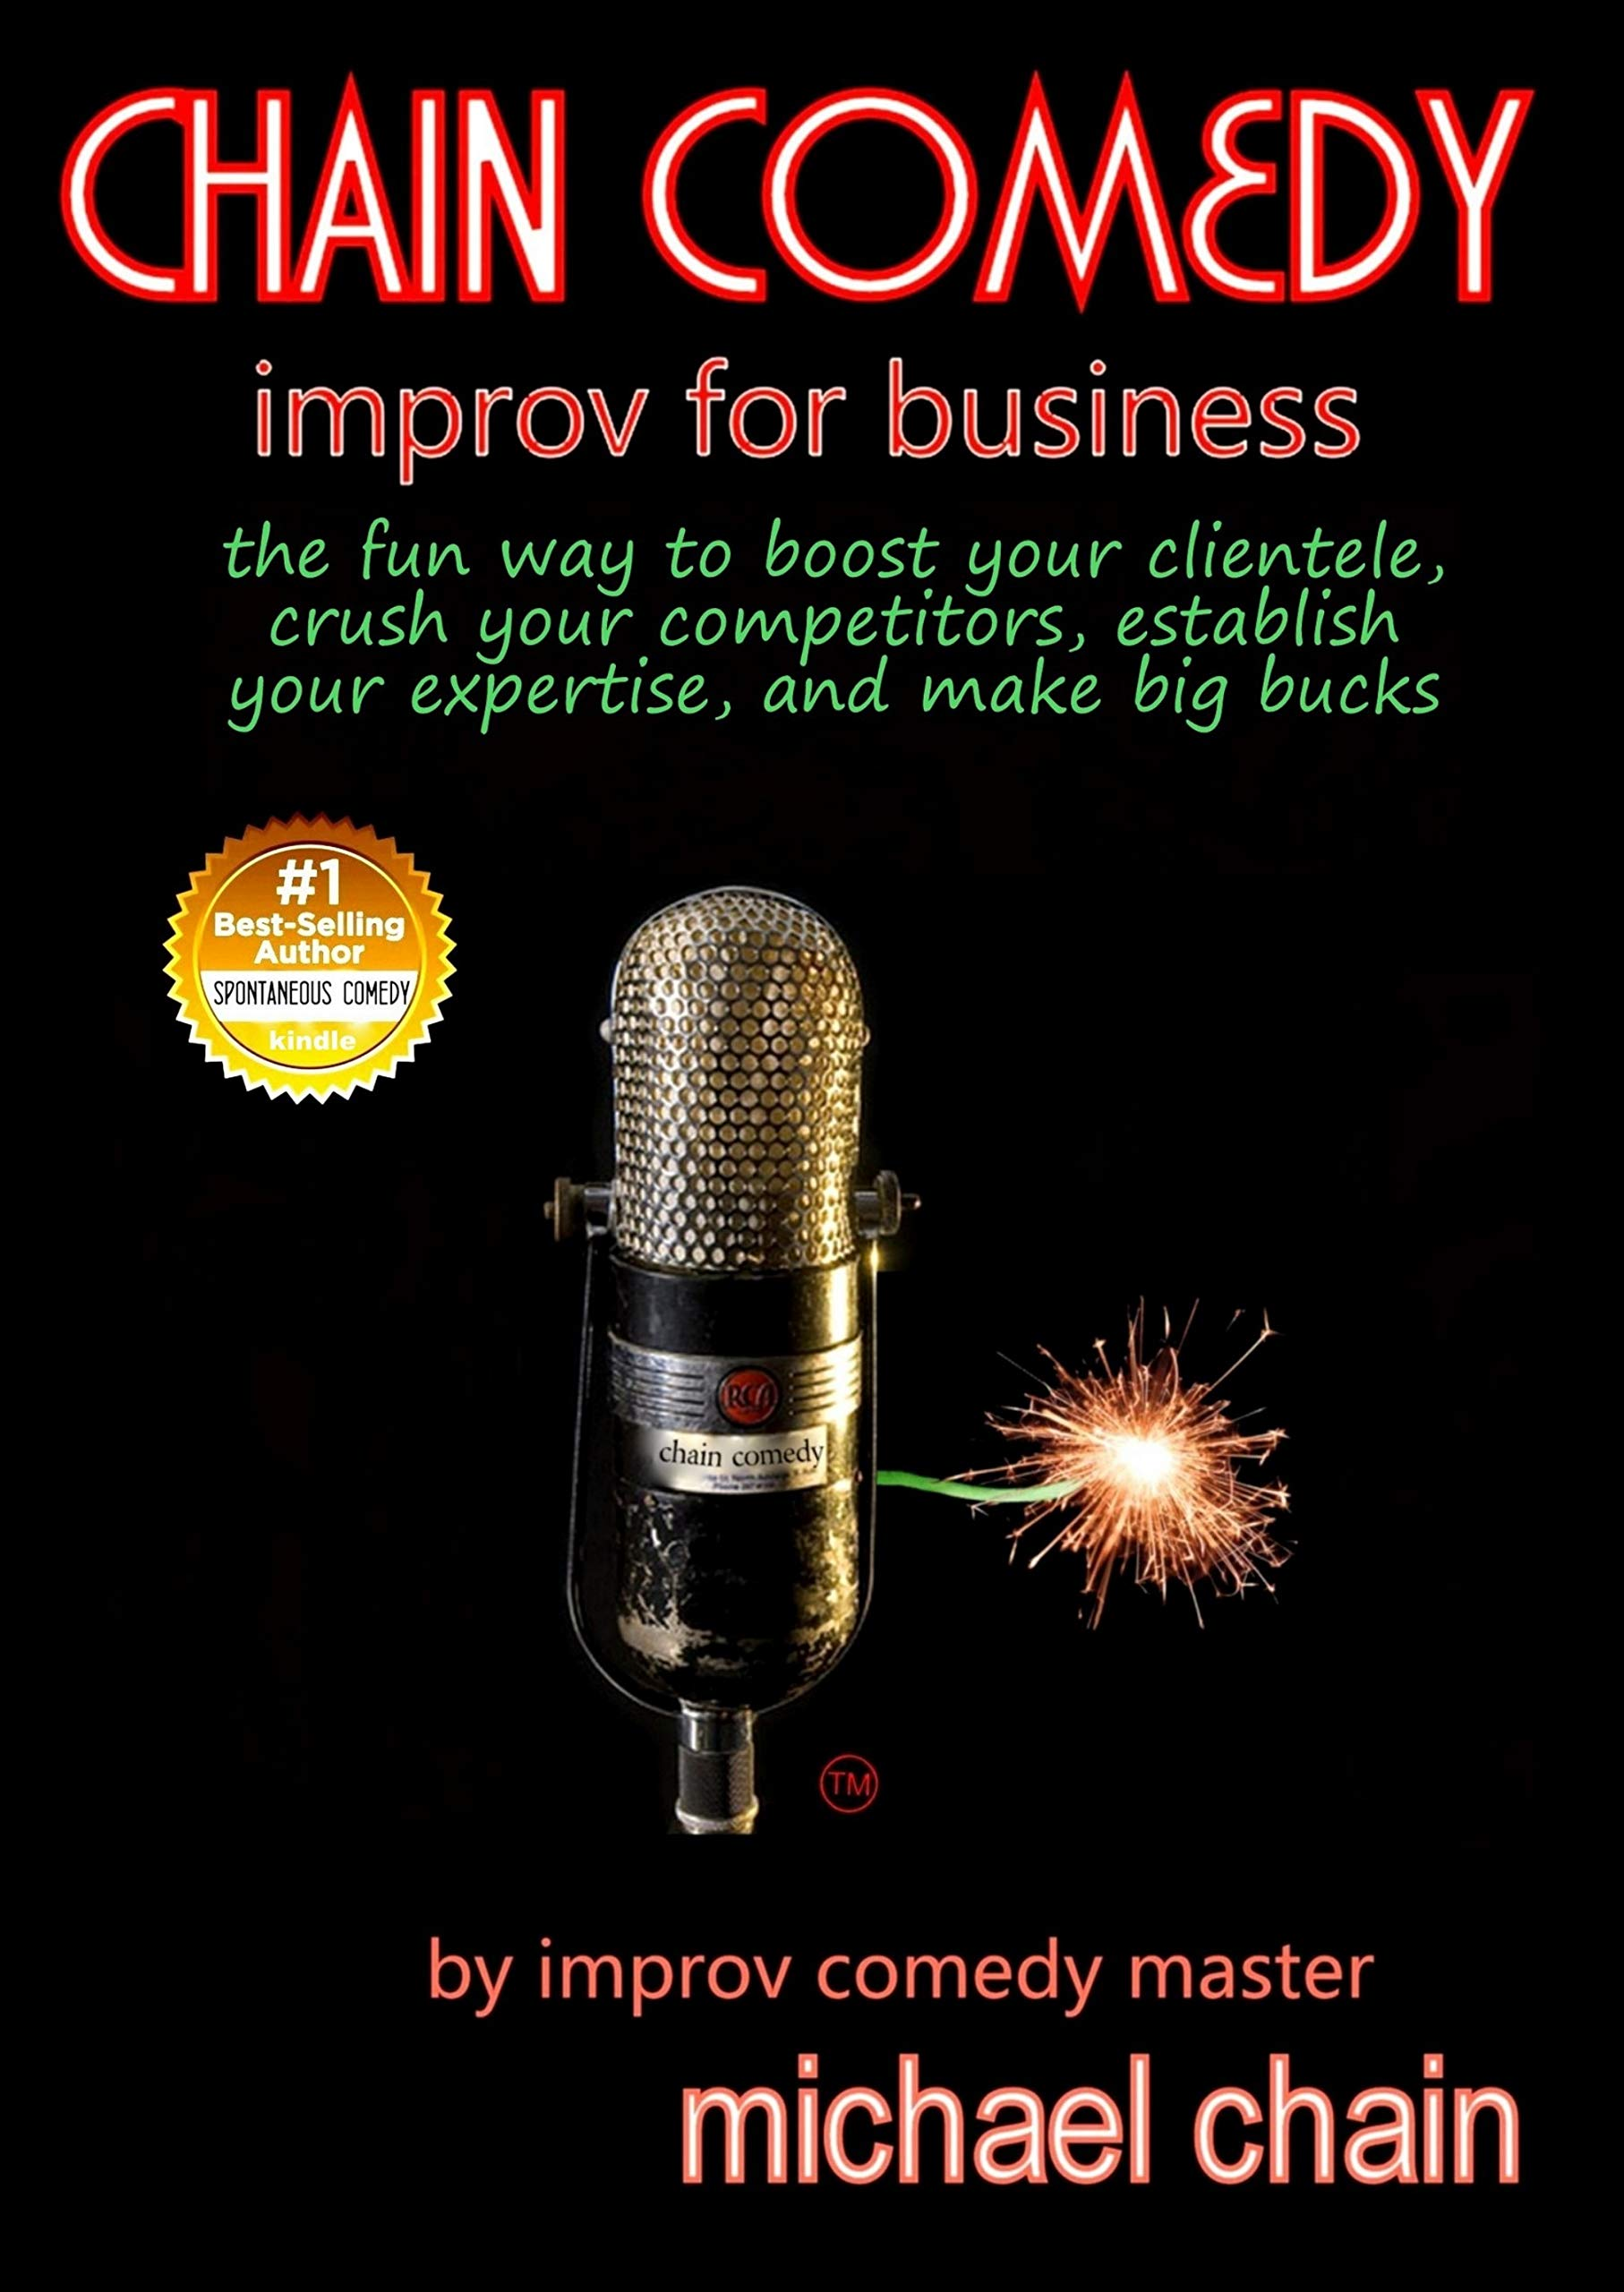 Chain Comedy Improv for Business: the fun way to boost your clientele, crush your competitors, establish your expertise, and make big bucks